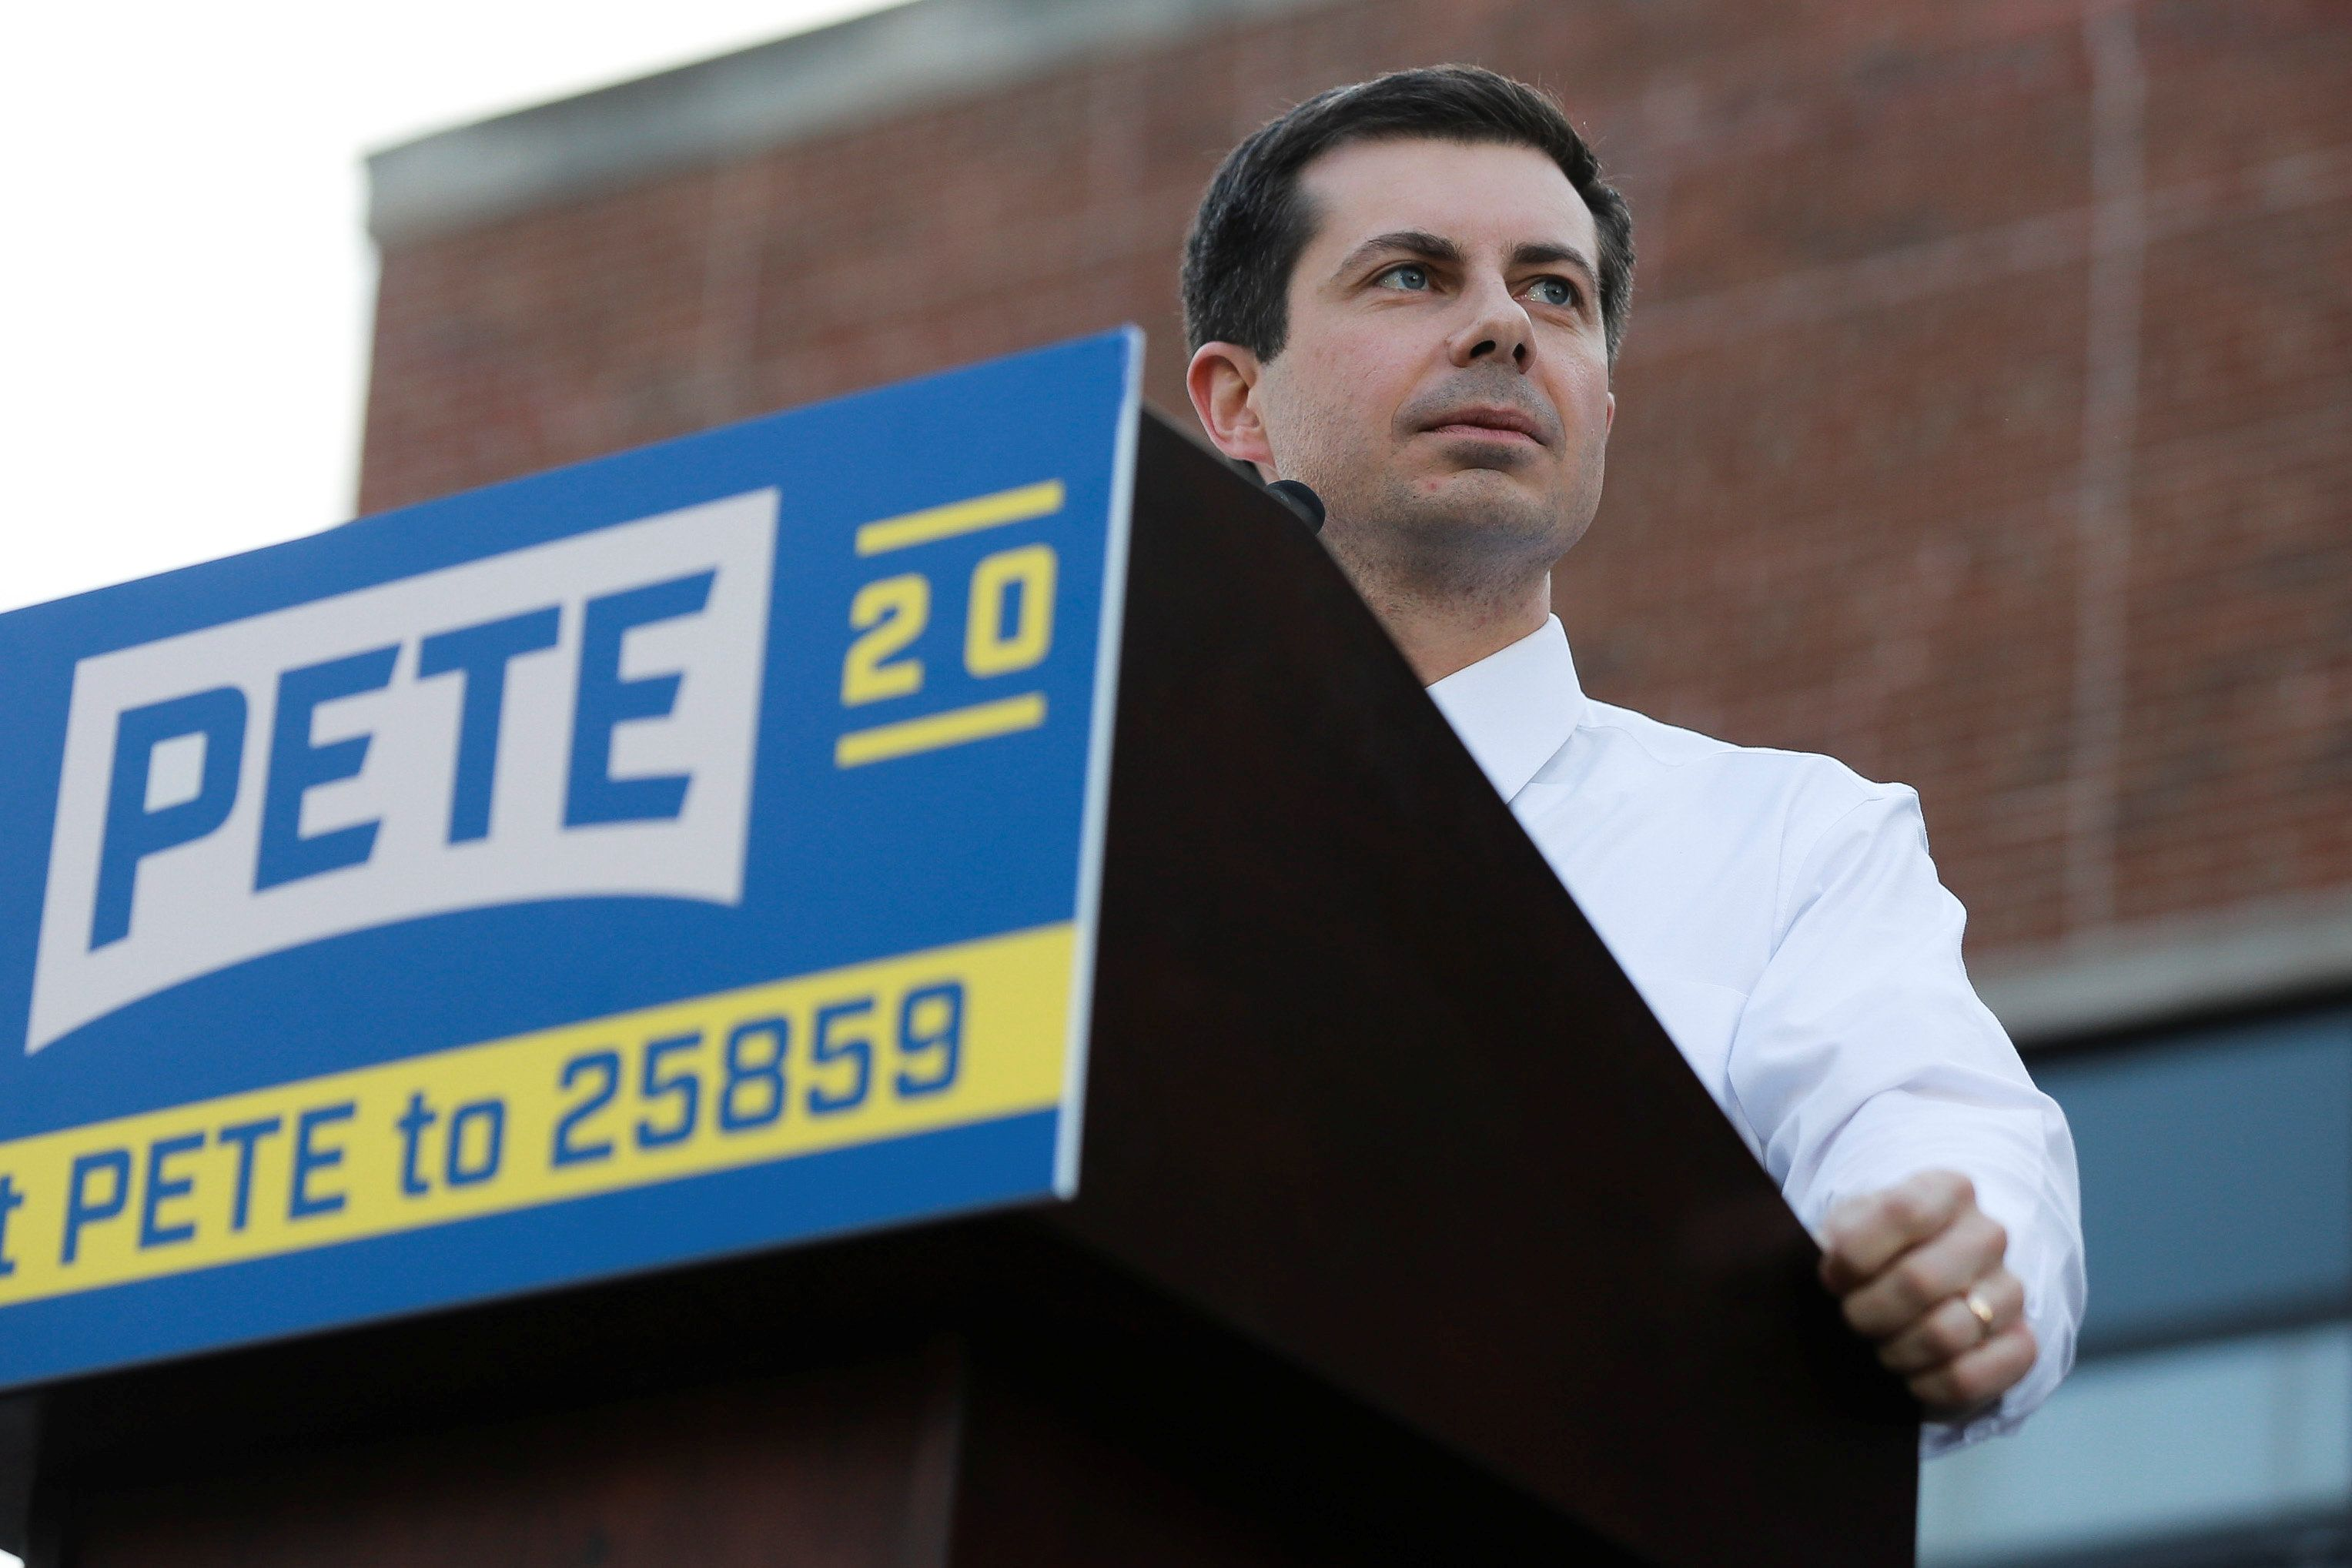 2020 Democratic presidential candidate Pete Buttigieg speaks at a campaign event in Des Moines, Iowa, U.S., April 16, 2019.  REUTERS/Elijah Nouvelage